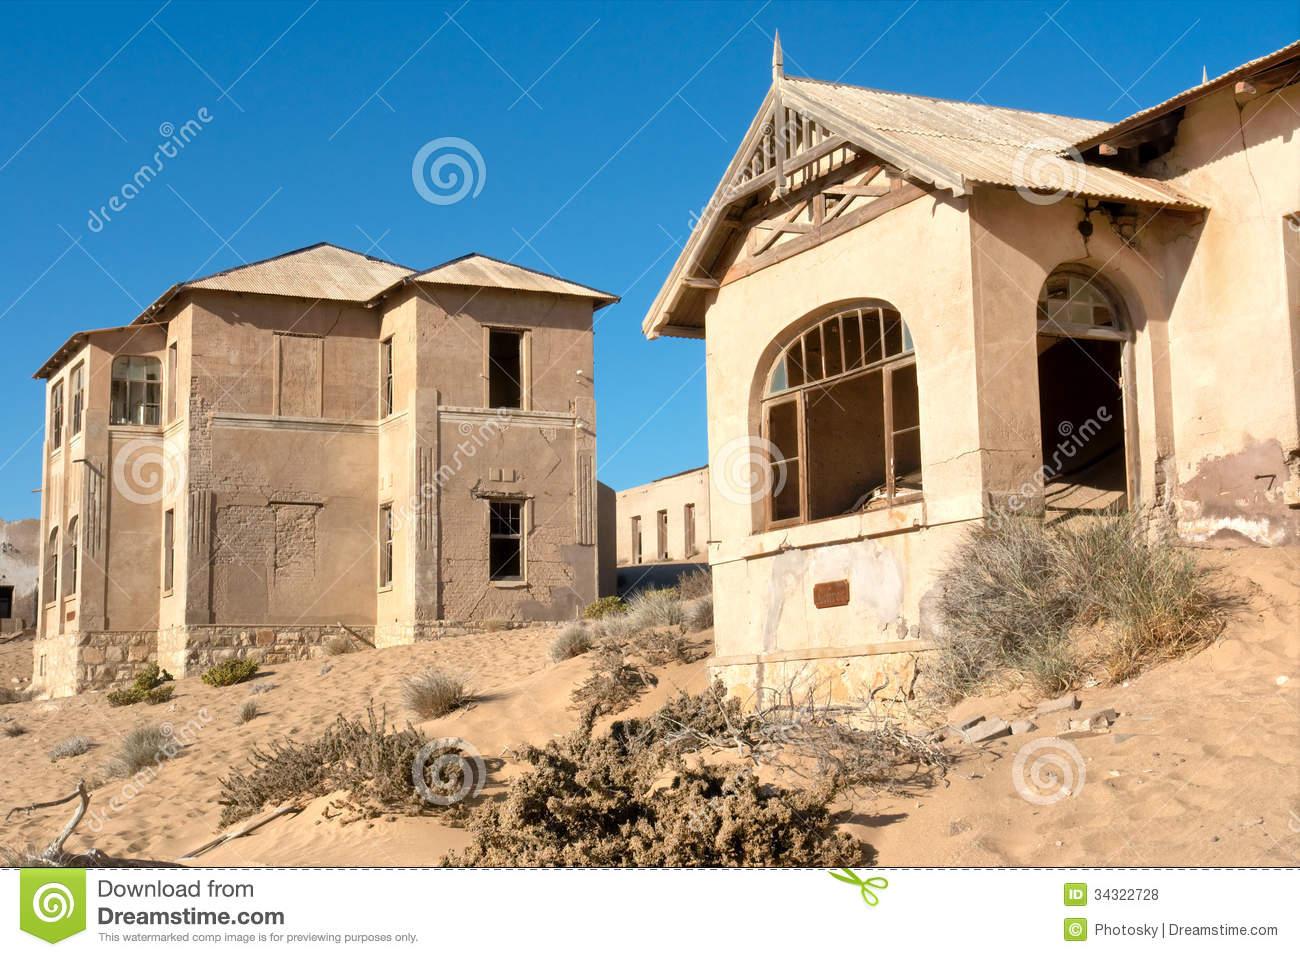 10 with Royalty Free Stock Photos Abandoned Houses Sand Shot Ghost Town Namibia Image34322728 on 5 further Royalty Free Stock Photos Abandoned Houses Sand Shot Ghost Town Namibia Image34322728 together with Backpackers Guide Pai Thailand together with Homesteads besides Kuningan Place.